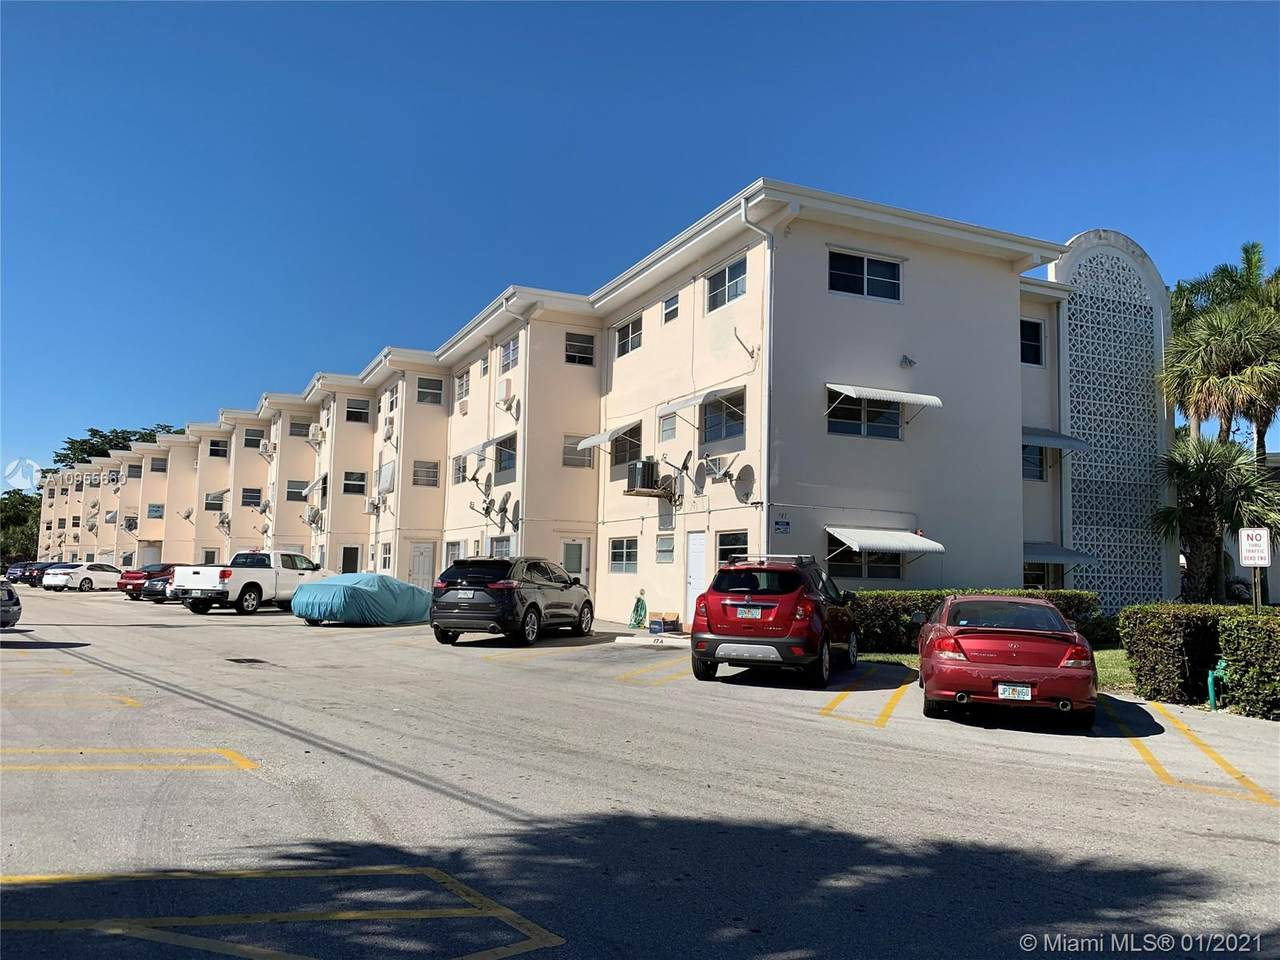 141 10th Ave - Photo 1